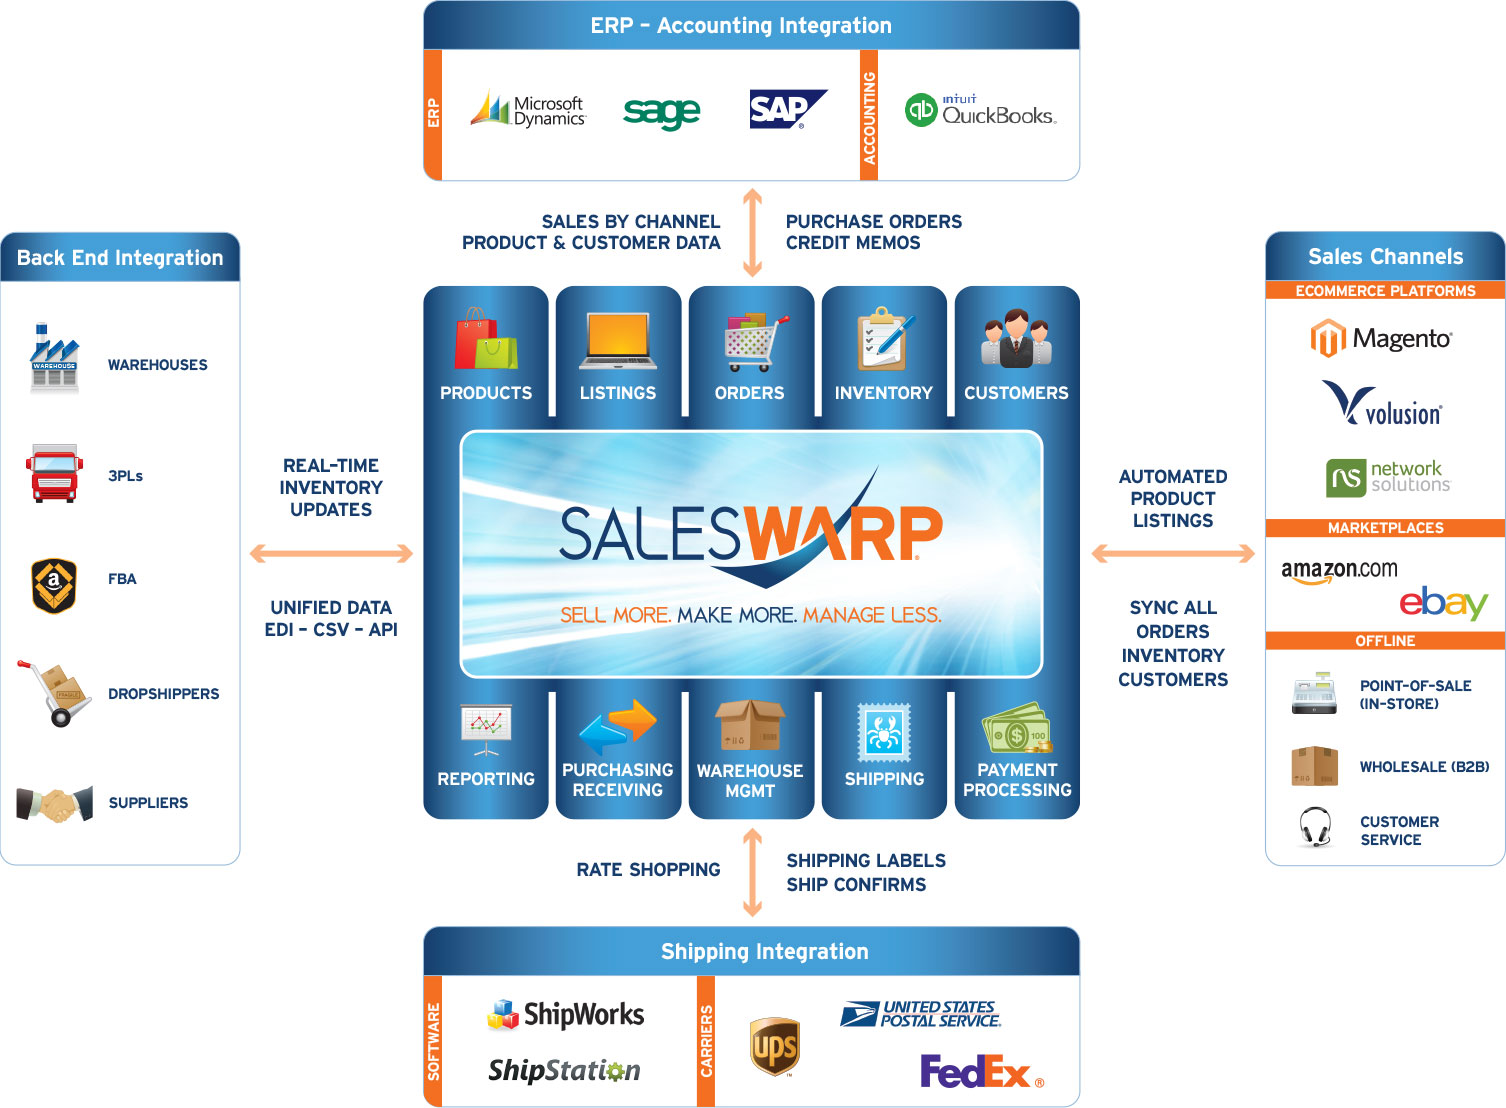 SalesWarp Omnichannel Commerce Management Software eCosystem: Sell More. Make More. Manage Less. Features: Product Management(PIM), Product Listing, Order Management System (OMS), Inventory Management, Customer Management, Reporting & Analytics, Supplier Management, Purchasing & Receiving, Fulfillment, Warehouse Management, Payment Processing, ERP & Accounting Integration, Shipping Integration, Omnichannel Commerce, Back-end Integration, Multichannel Retail, Magento, Volusion, Network Solutions, eBay, Amazon, POS, B2B, Call Centers